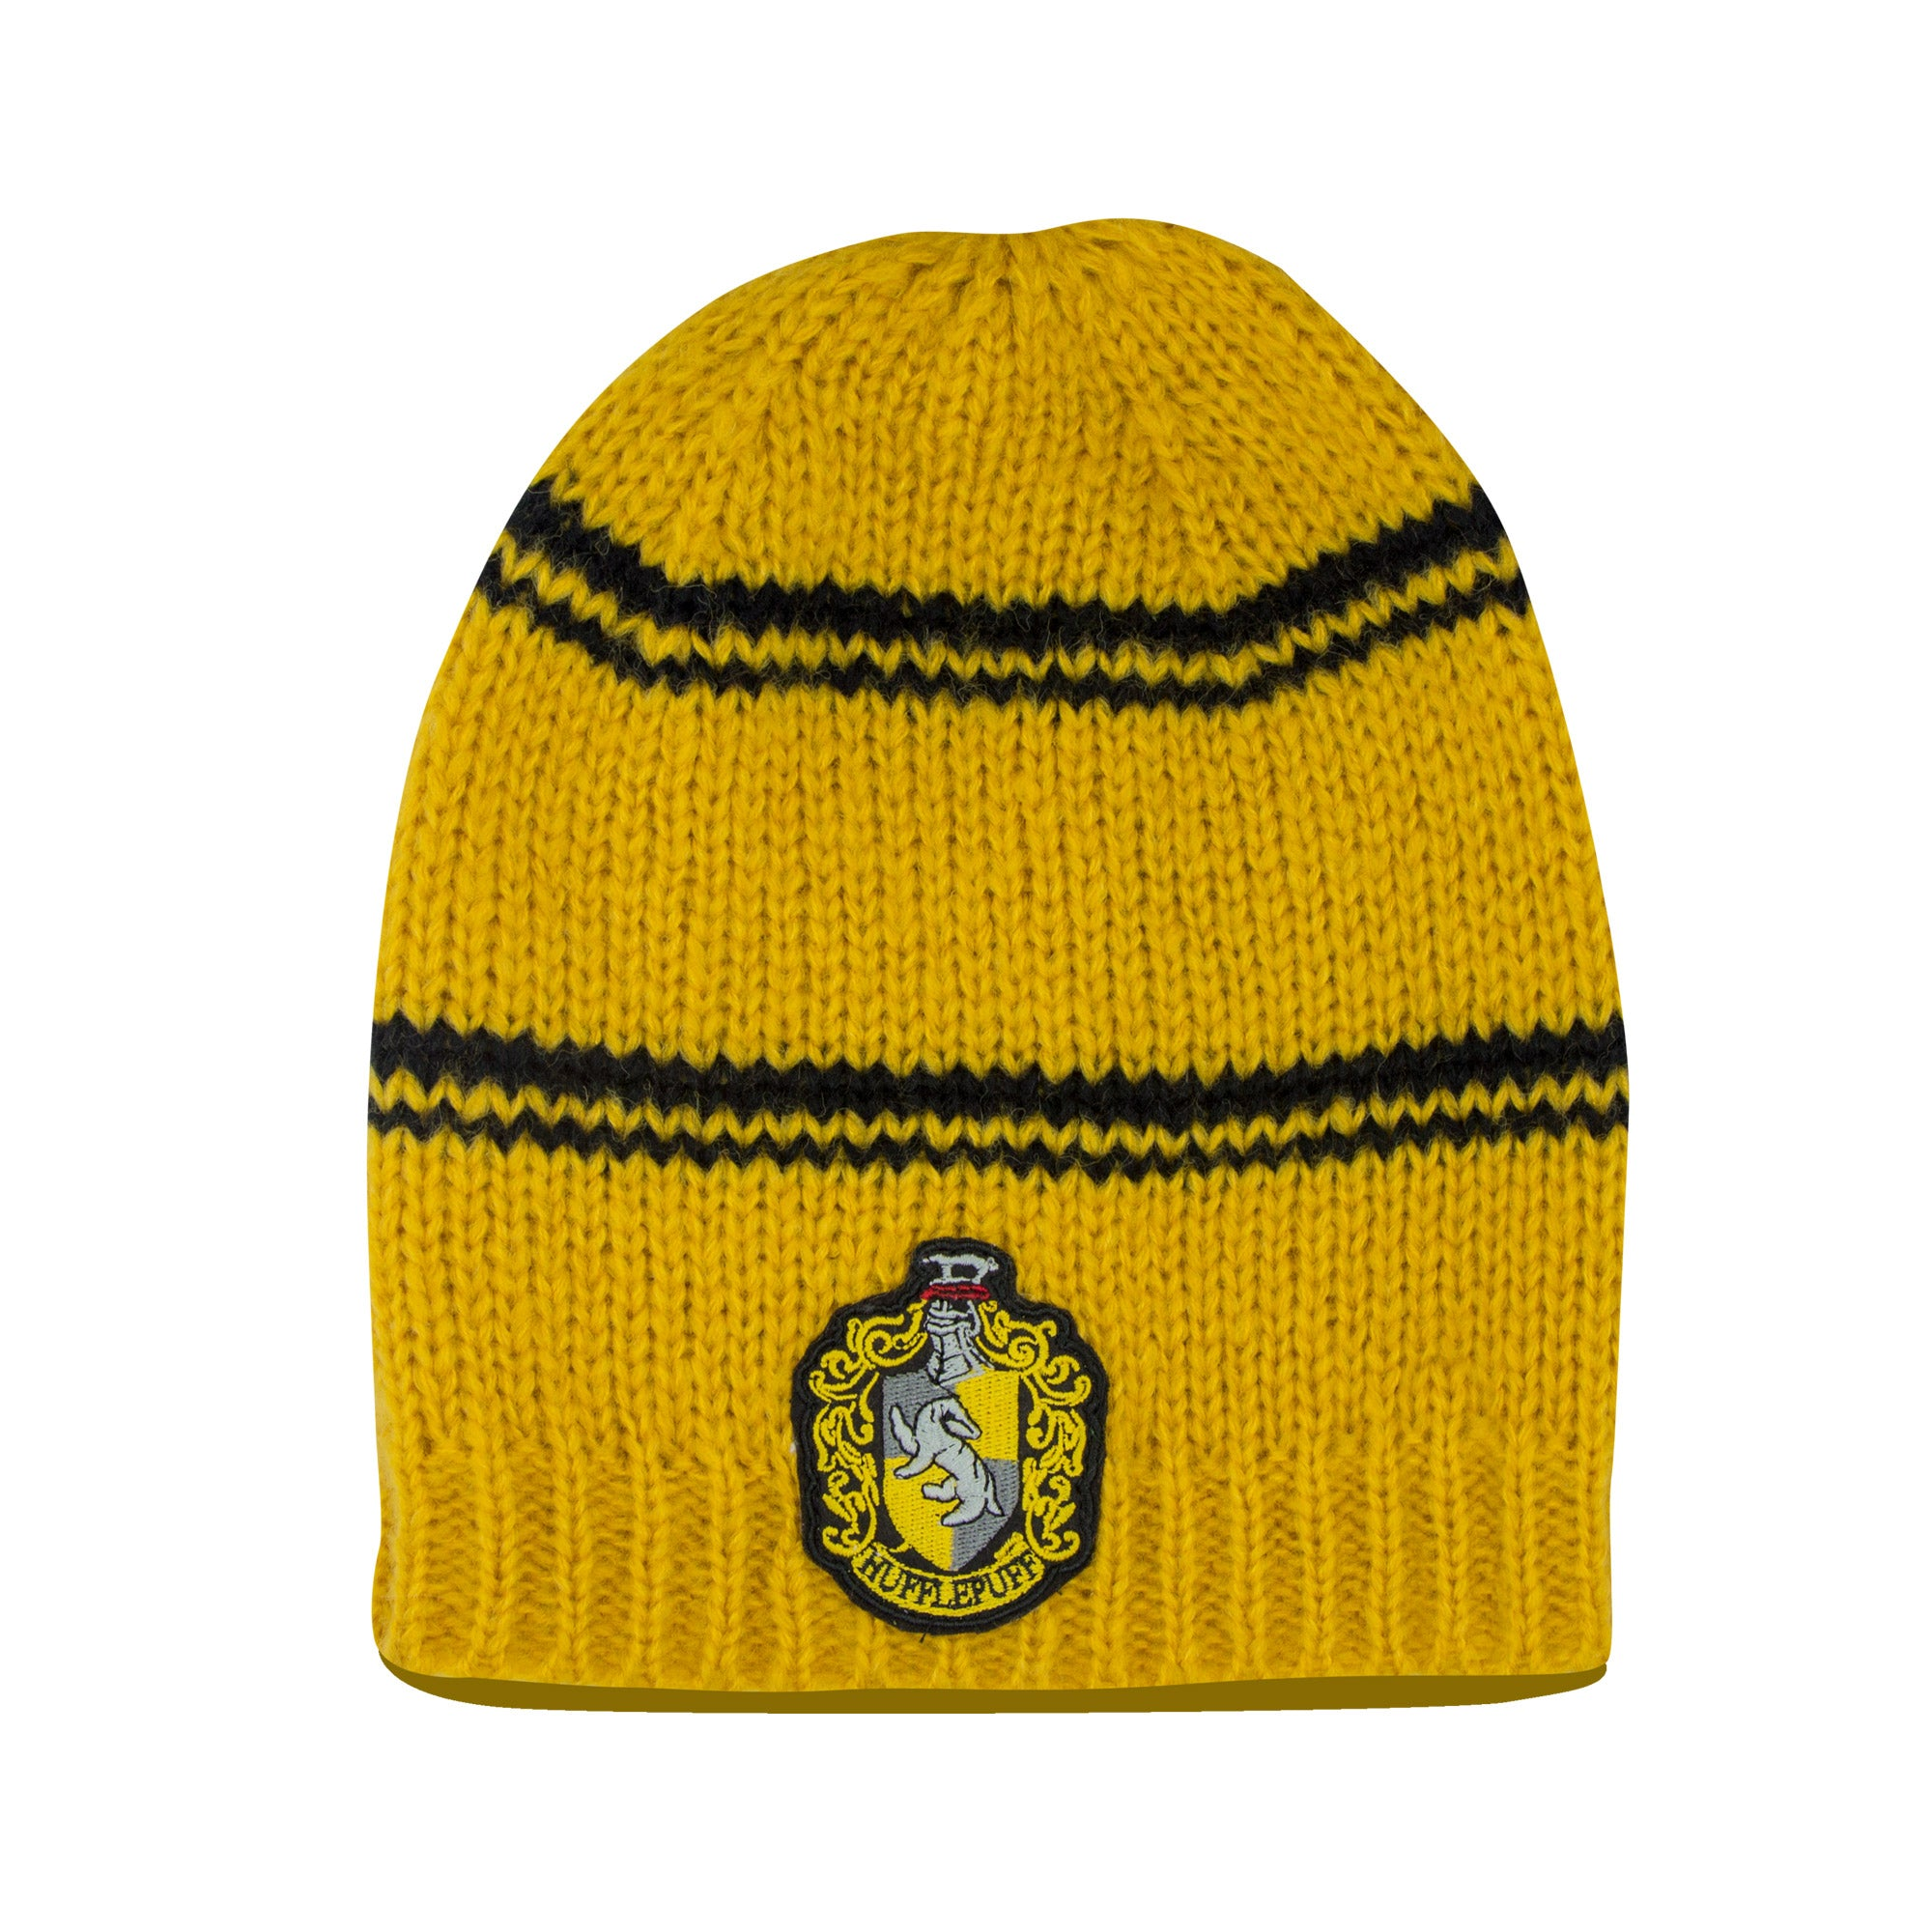 CNR - Gorro Harry Potter Hufflepuff